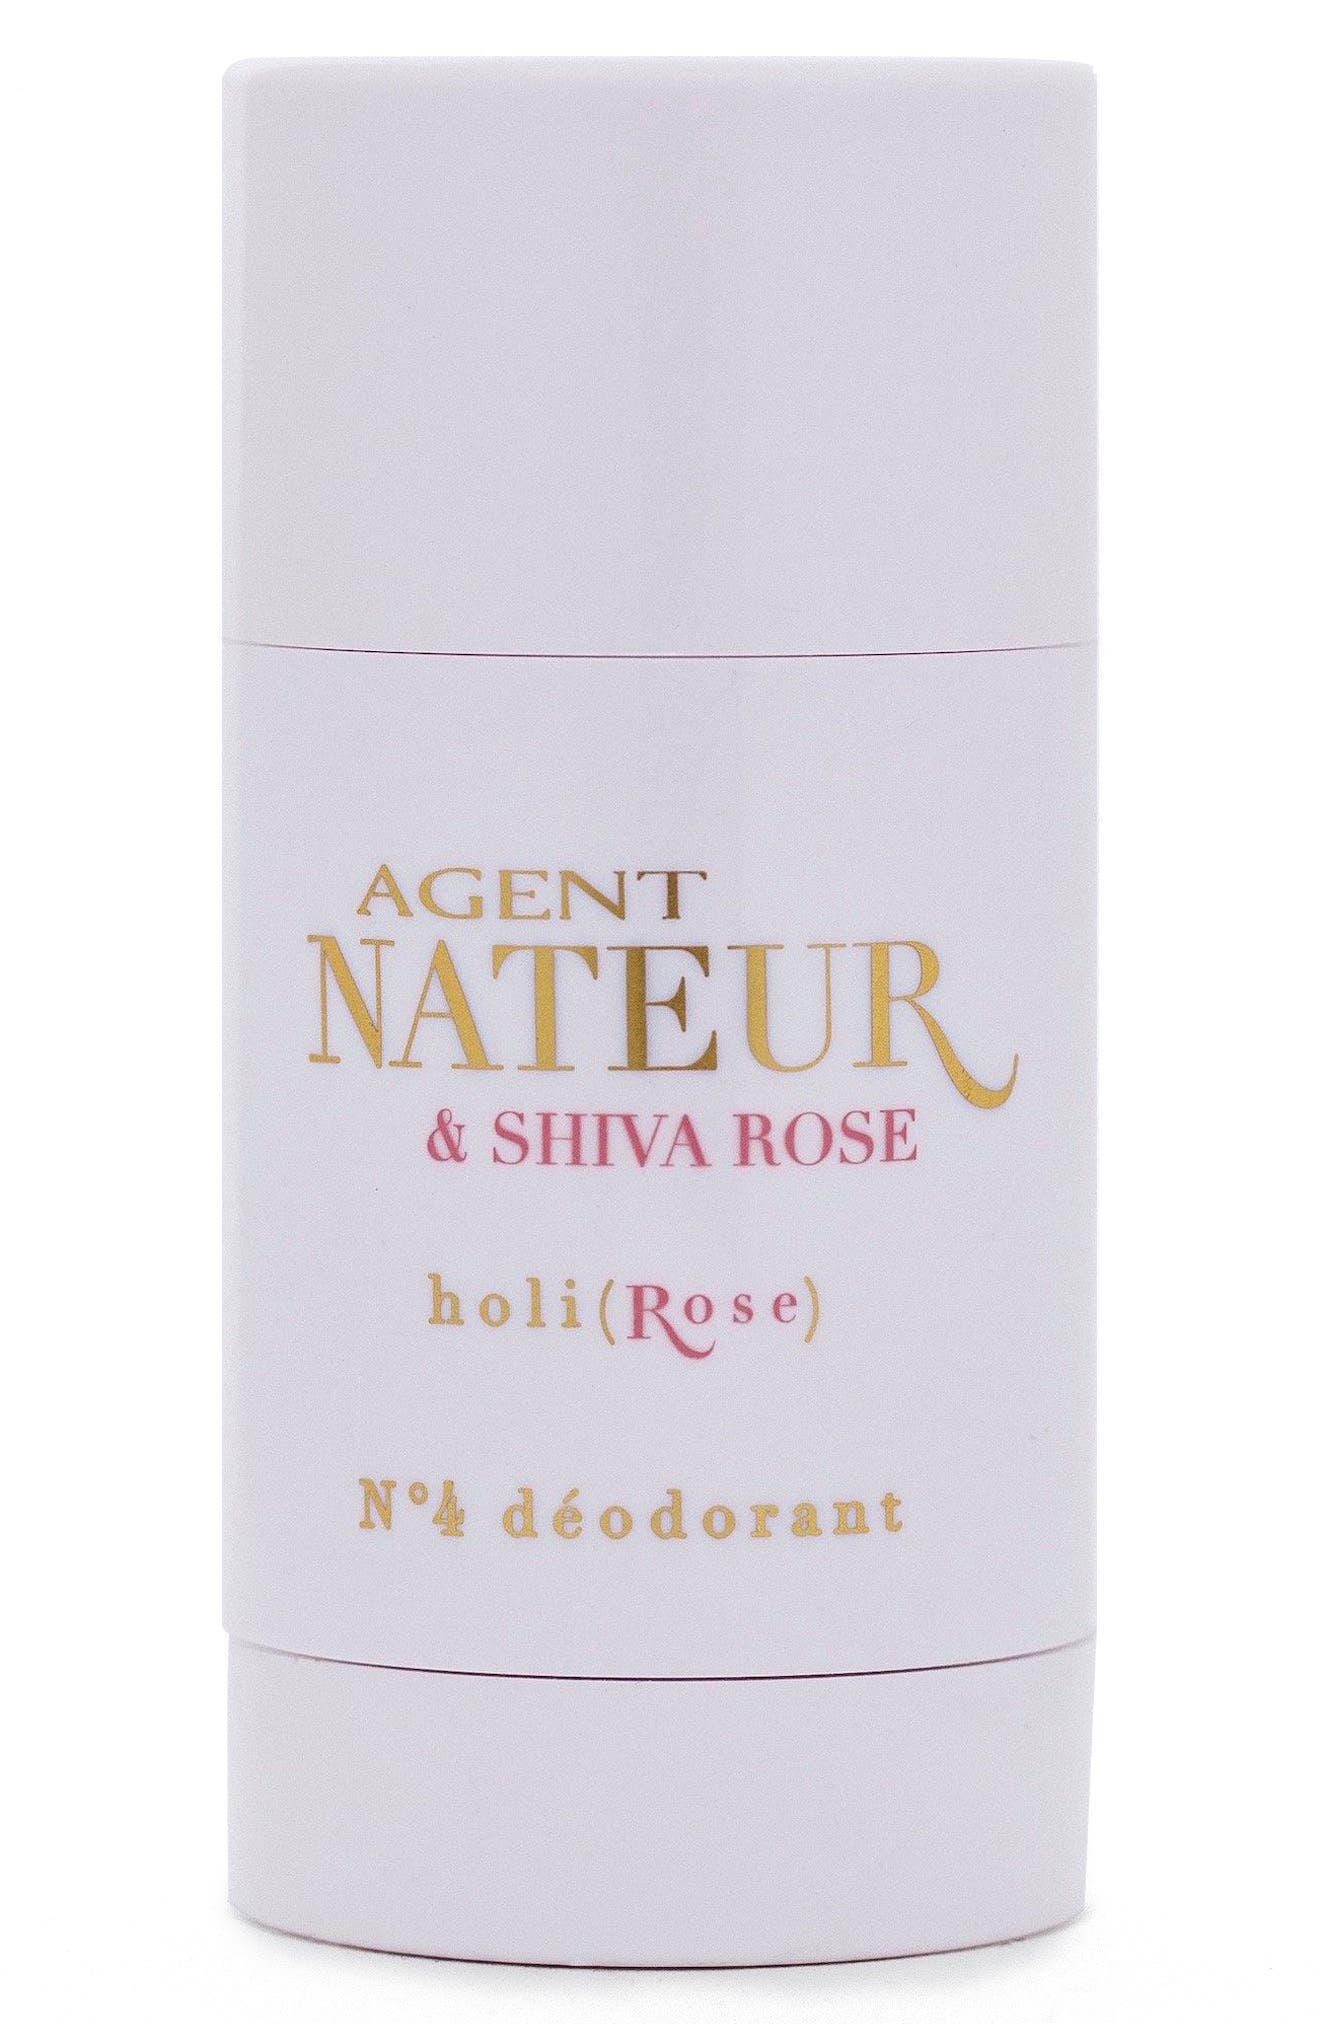 Alternate Image 1 Selected - Agent Nateur holi(rose) No4 Deodorant